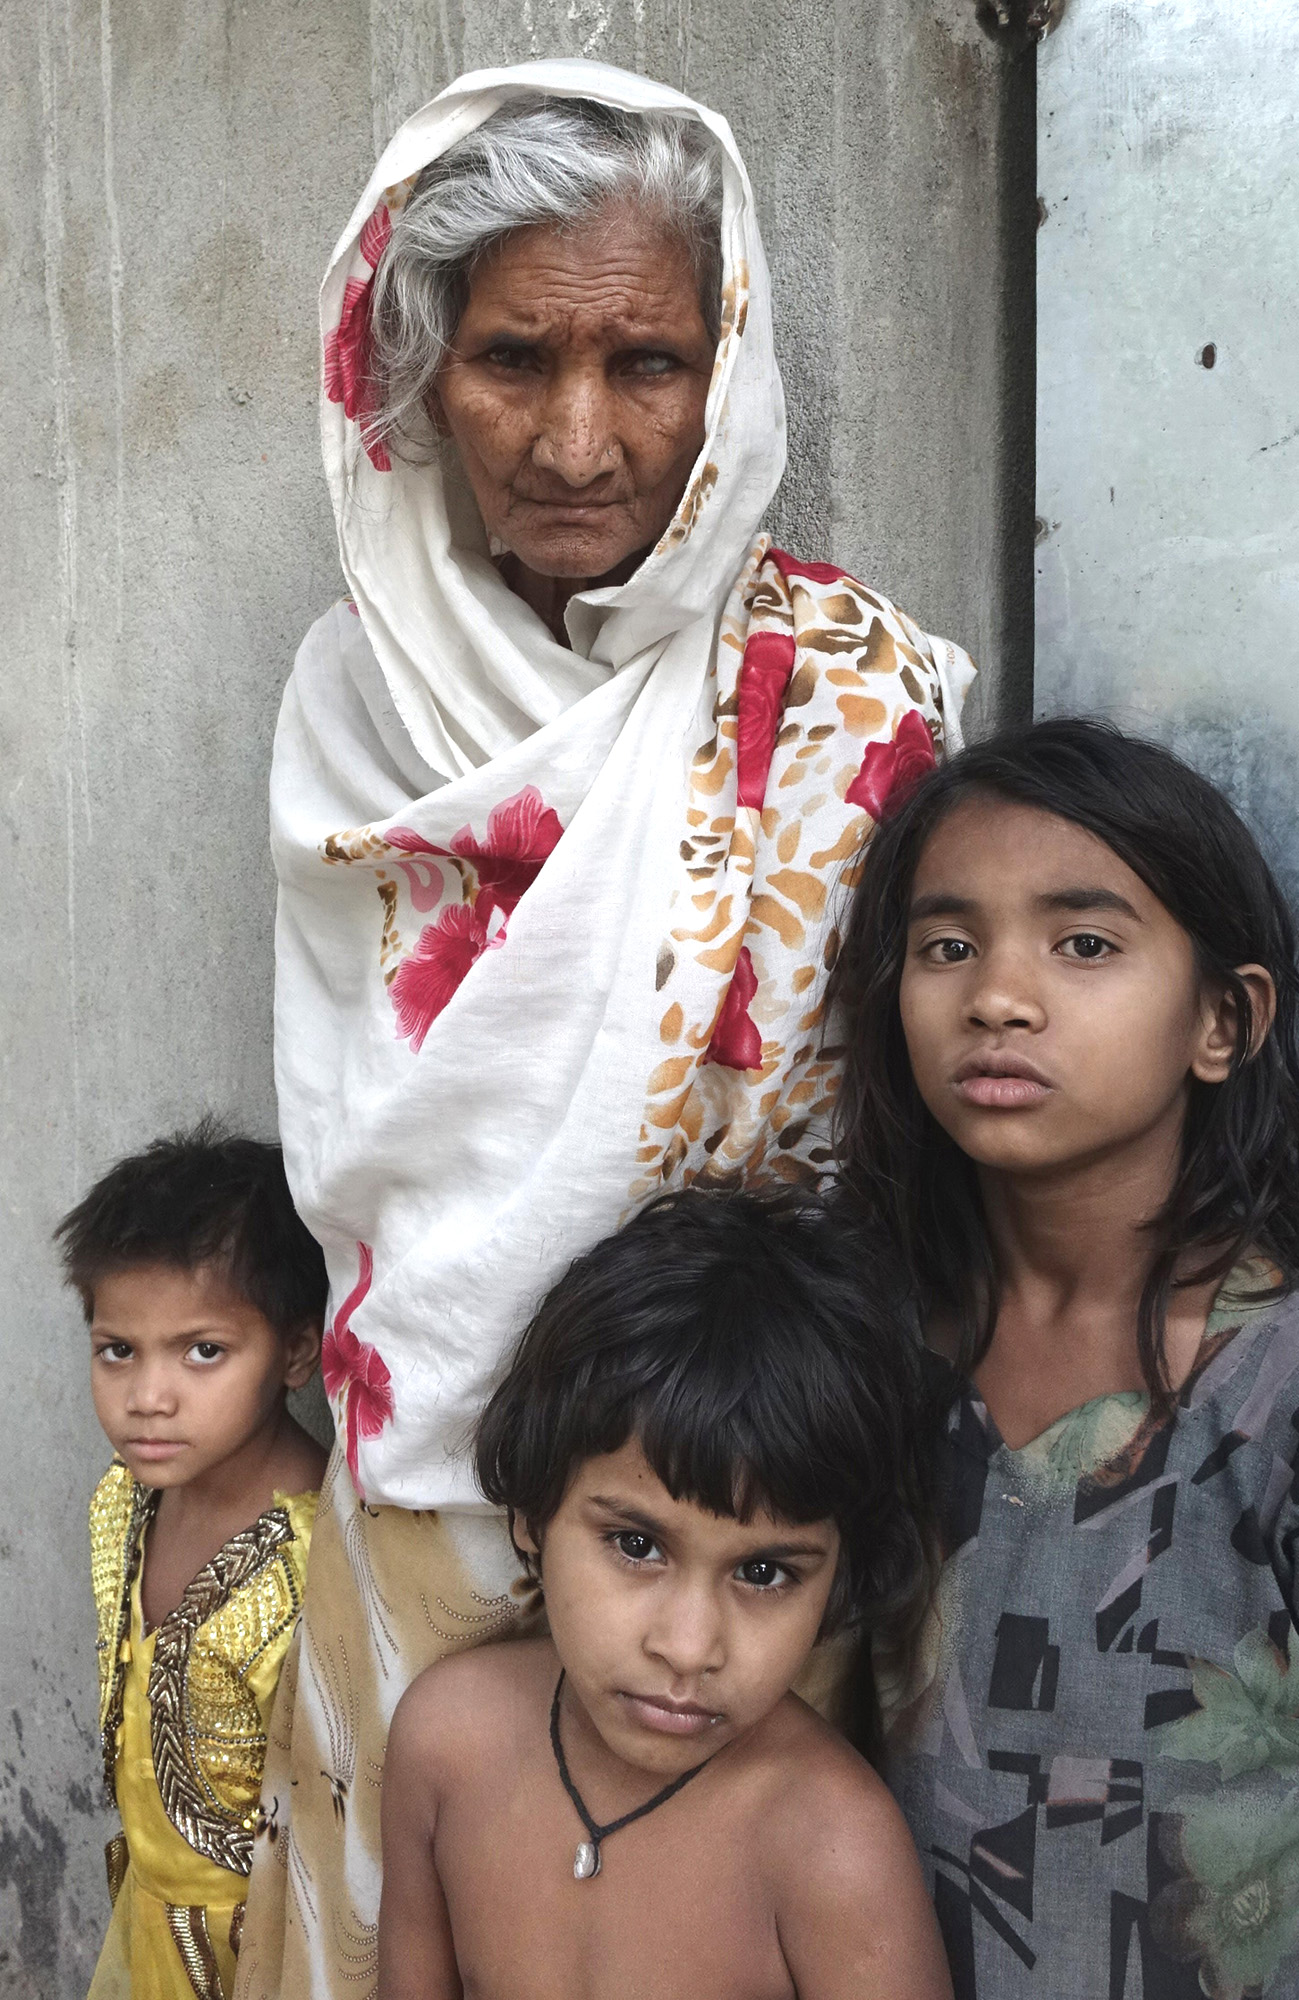 Some Rohingya children and a woman at an unidentified refugee colony in West Bengal, eastern India (April 2018).